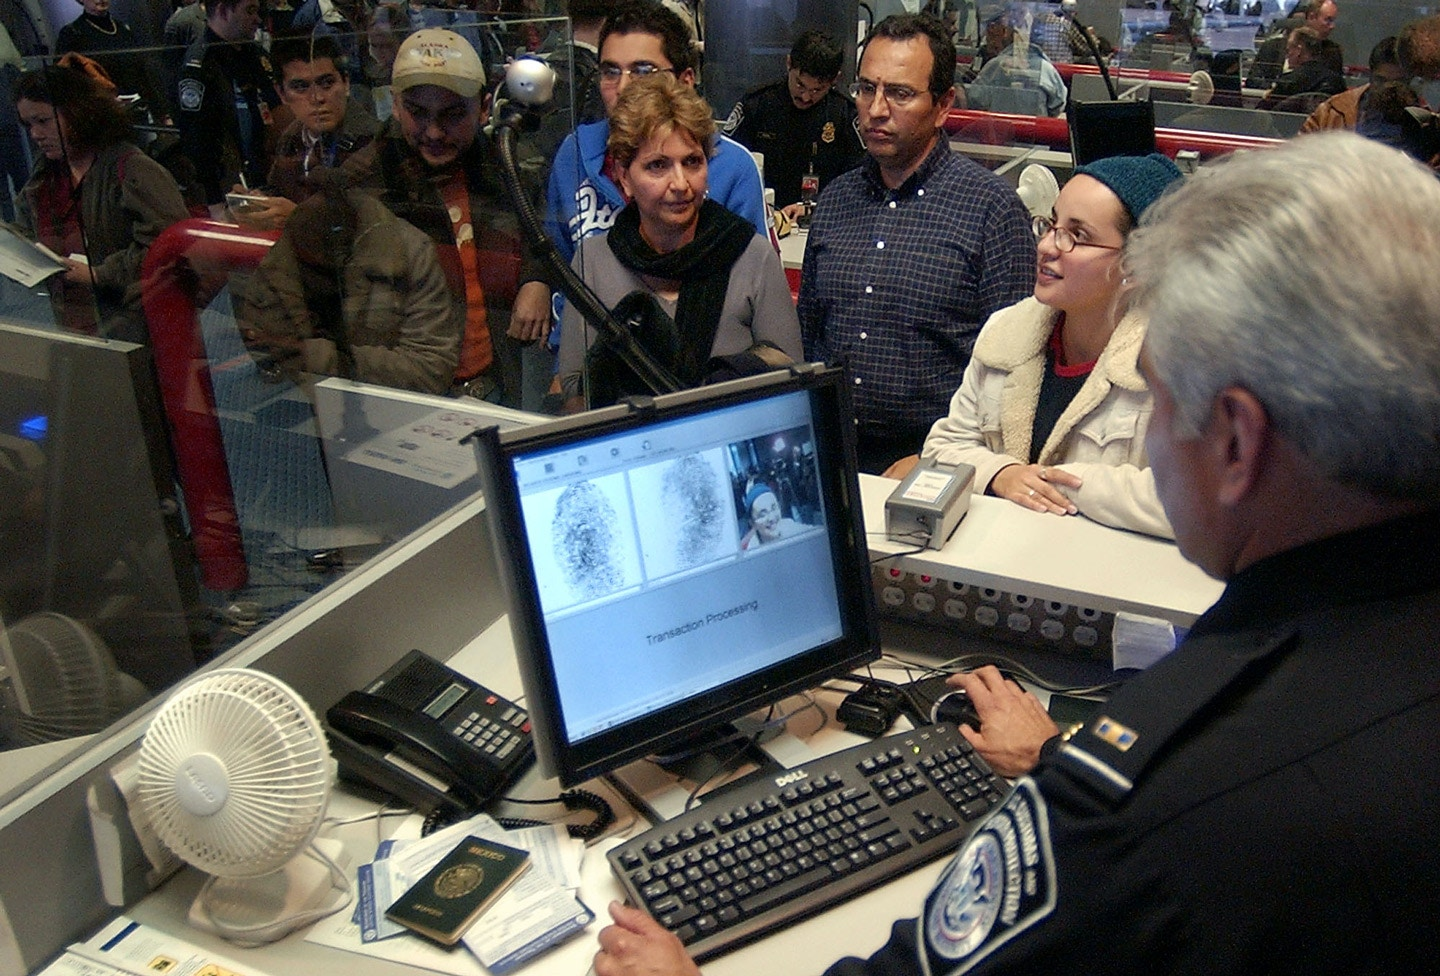 Carolina Velasco Cedeno, second from right, looks up toward a mini camera as U.S. Customs and Border Protection officer Roberto Alvarado, right front, records her picture and finger prints as Cedeno's parents, Carmen Cedeno de Velasco, center left, and Carlos Velasco Virgin, center right, look on upon their arrival at Dallas Fort Worth International Airport from Guadalajara, Mexico, Monday, Jan. 5, 2004, in Grapevine, Texas. In the background are other visitors waiting to be processed by other officers. (AP Photo/Tony Gutierrez)